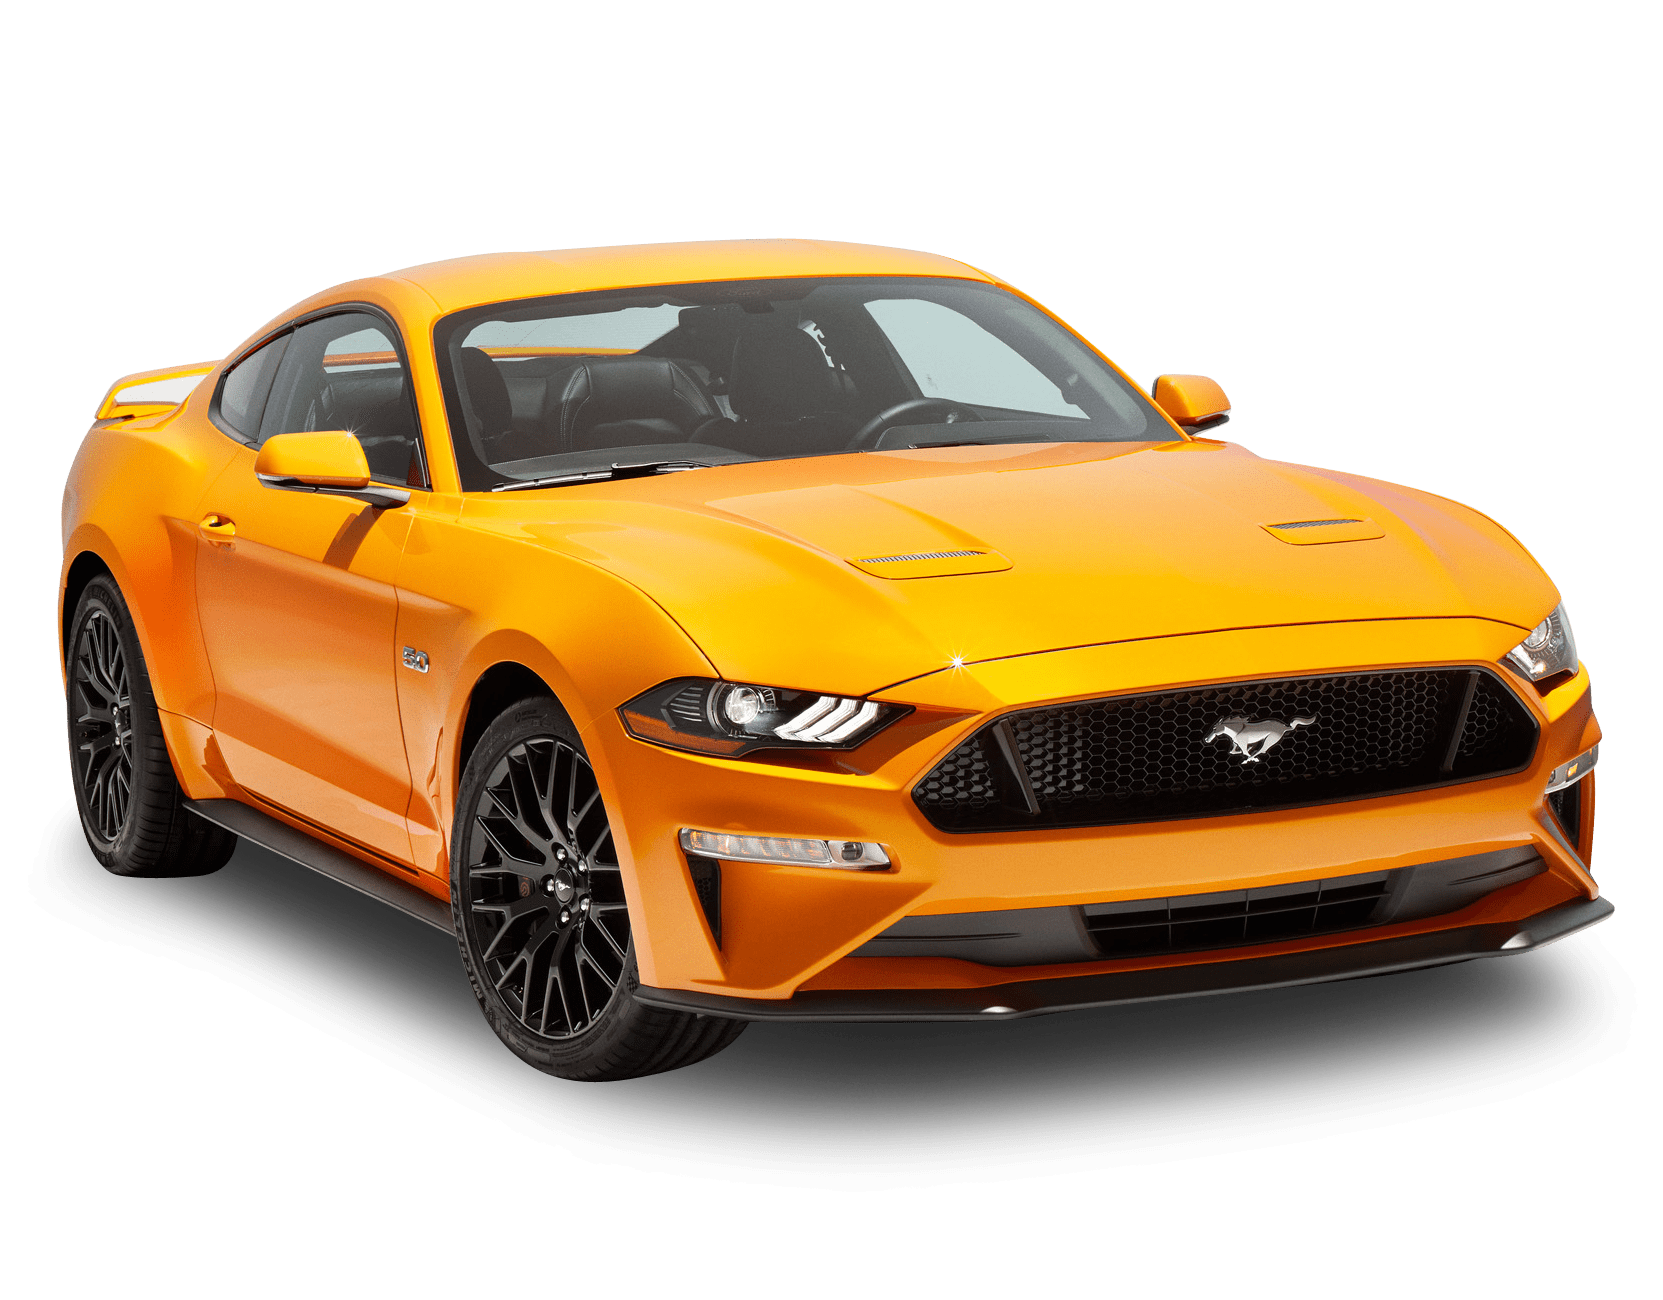 Ford mustang carsguide